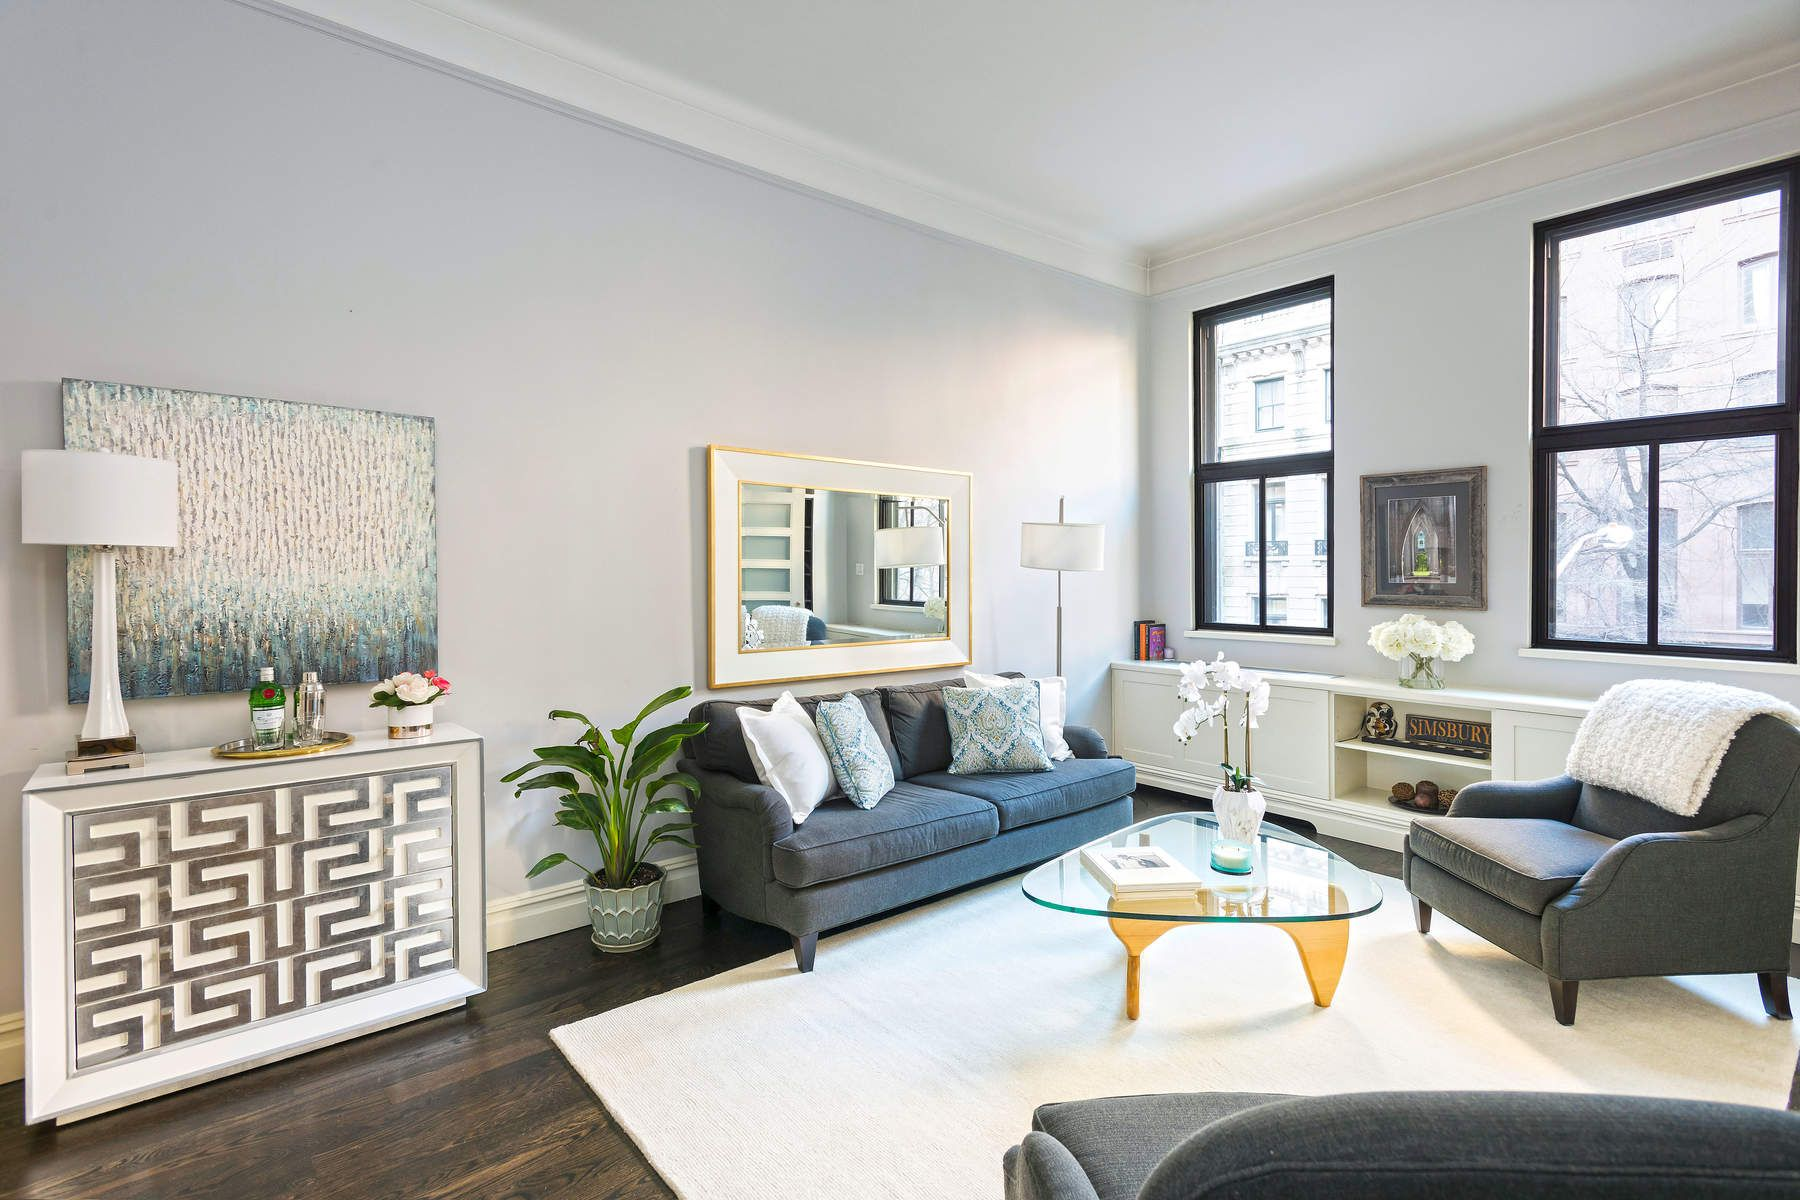 Co-op for Sale at 104 East 37th Street, Apt. 3BC 104 East 37th Street Apt 3BC, Murray Hill, New York, New York, 10016 United States